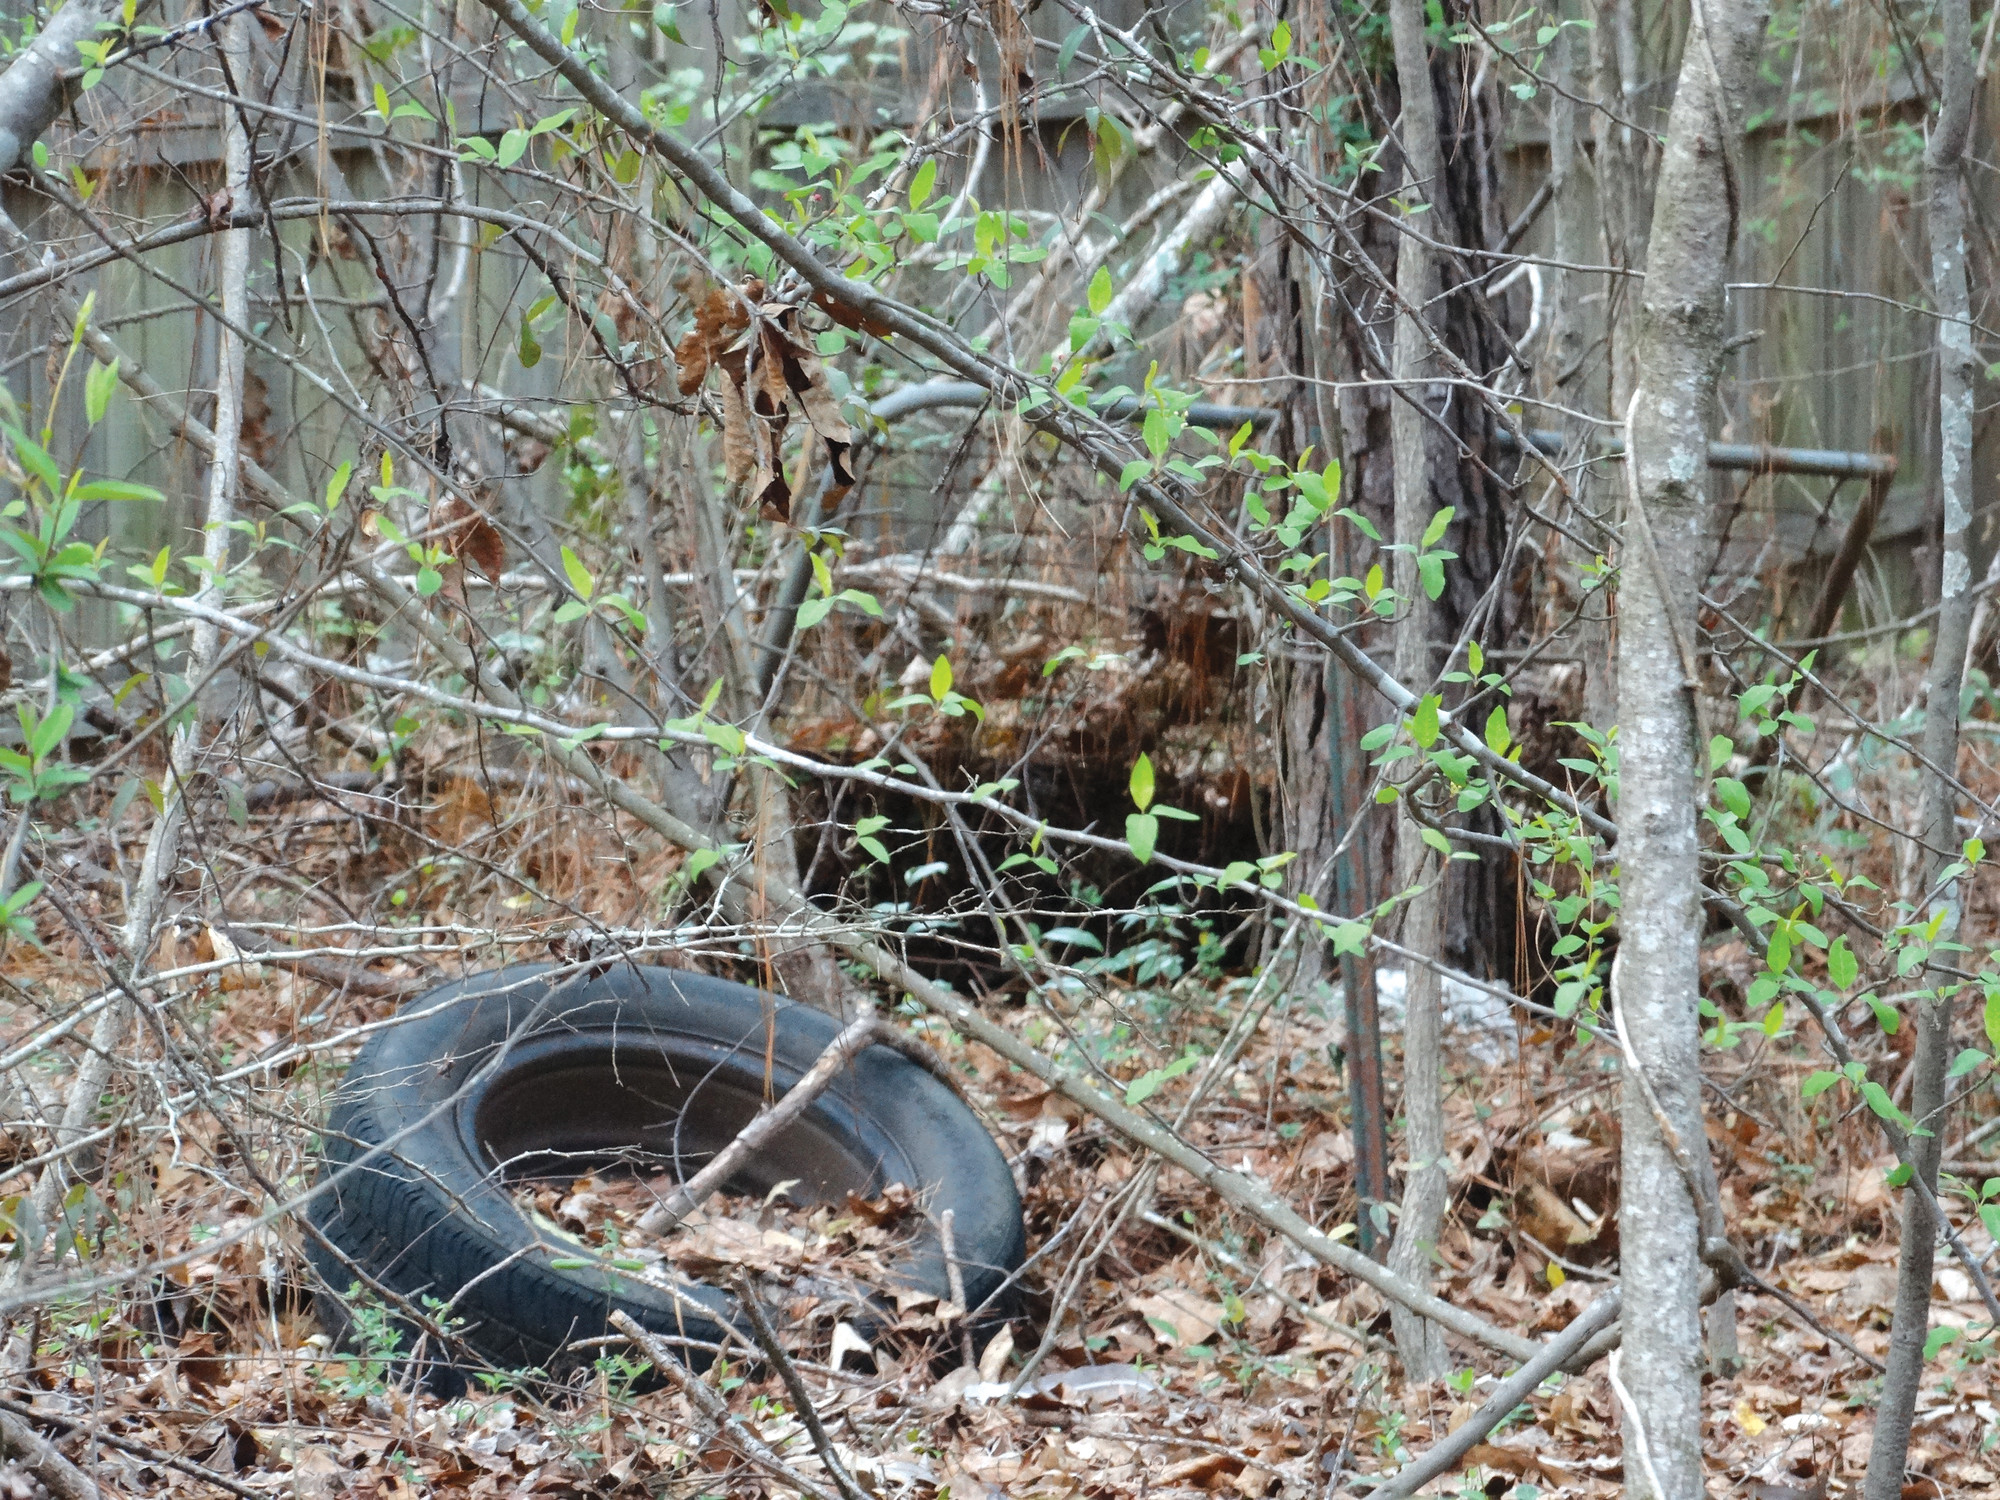 An old tire and metal frame are seen in the woods at Dillon Park on Sunday.